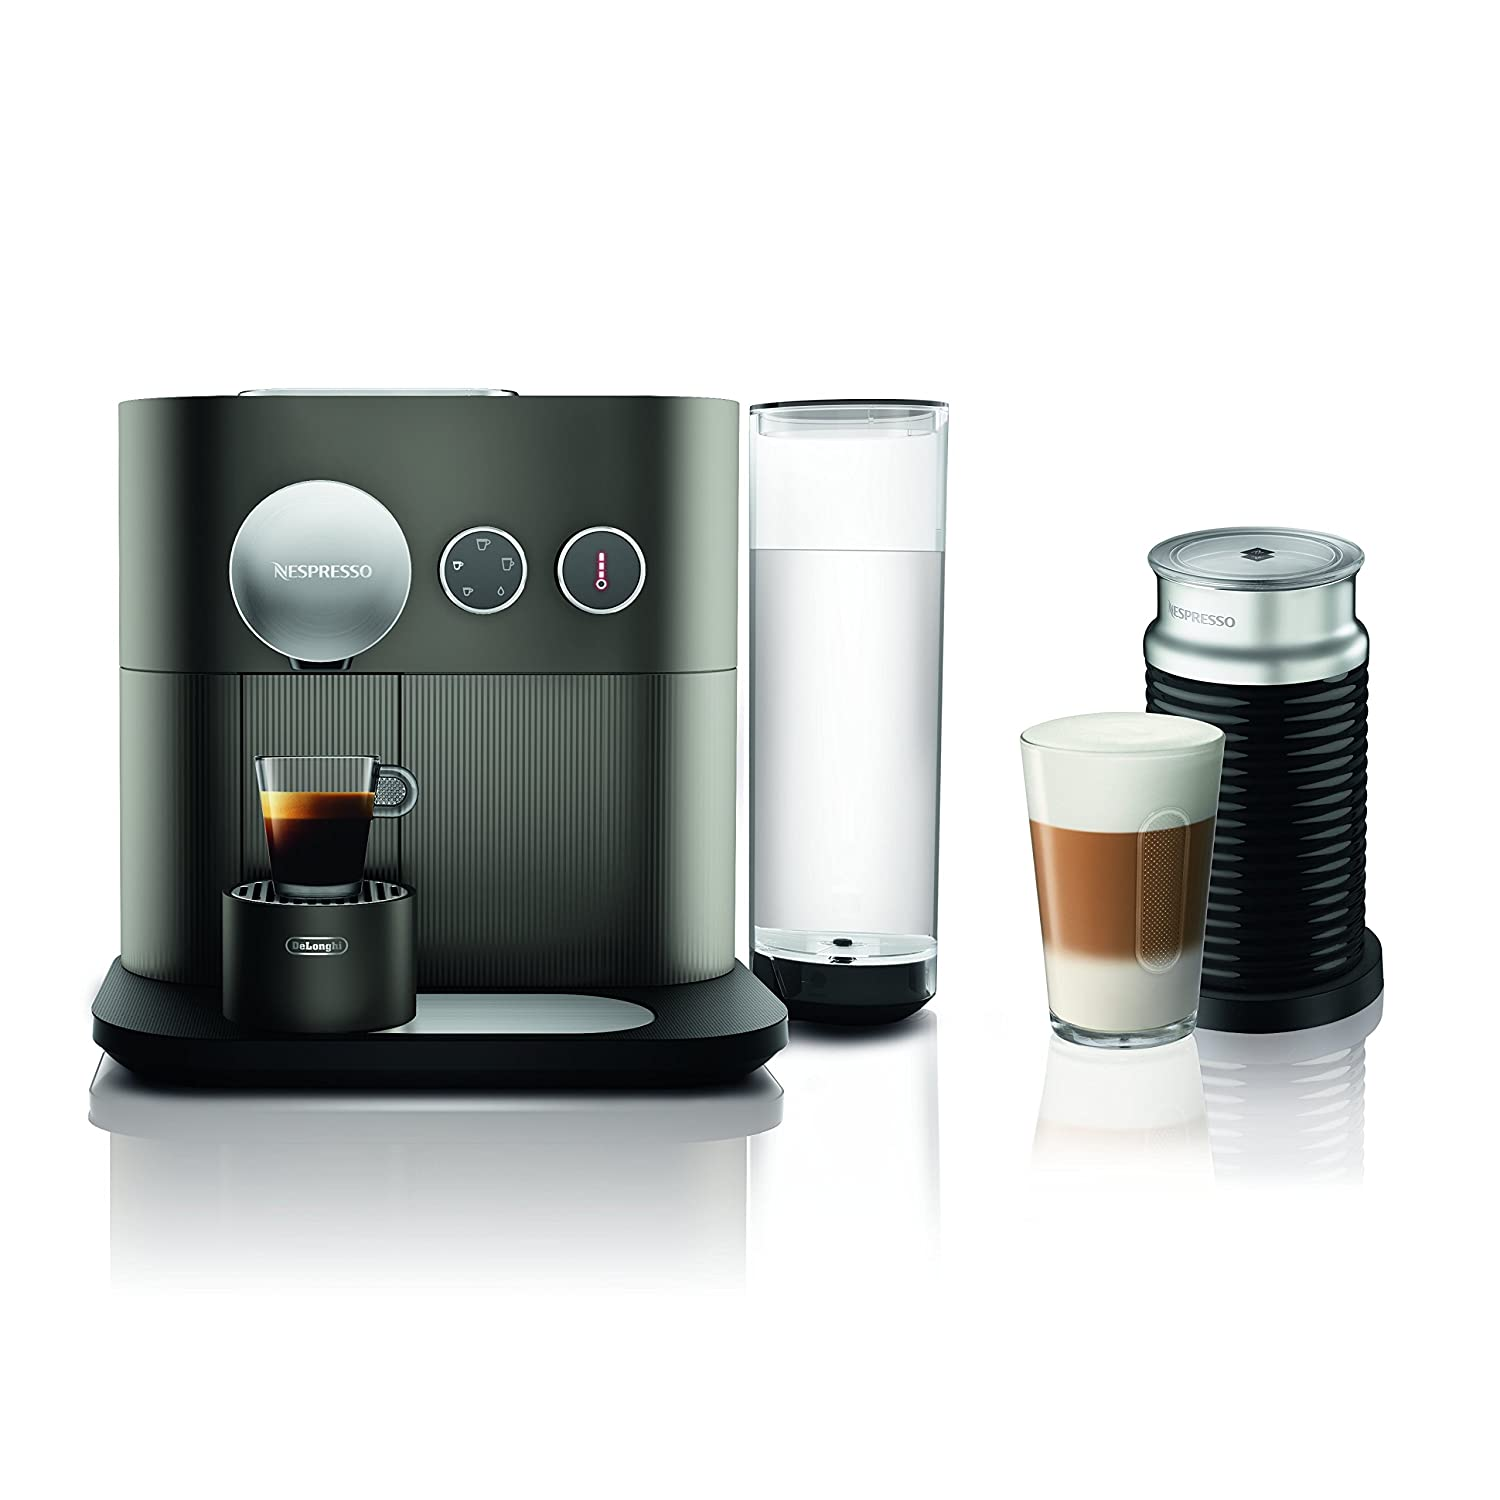 Nespresso Expert Espresso Machineby De'Longhi with Aeroccino, Anthracite Grey